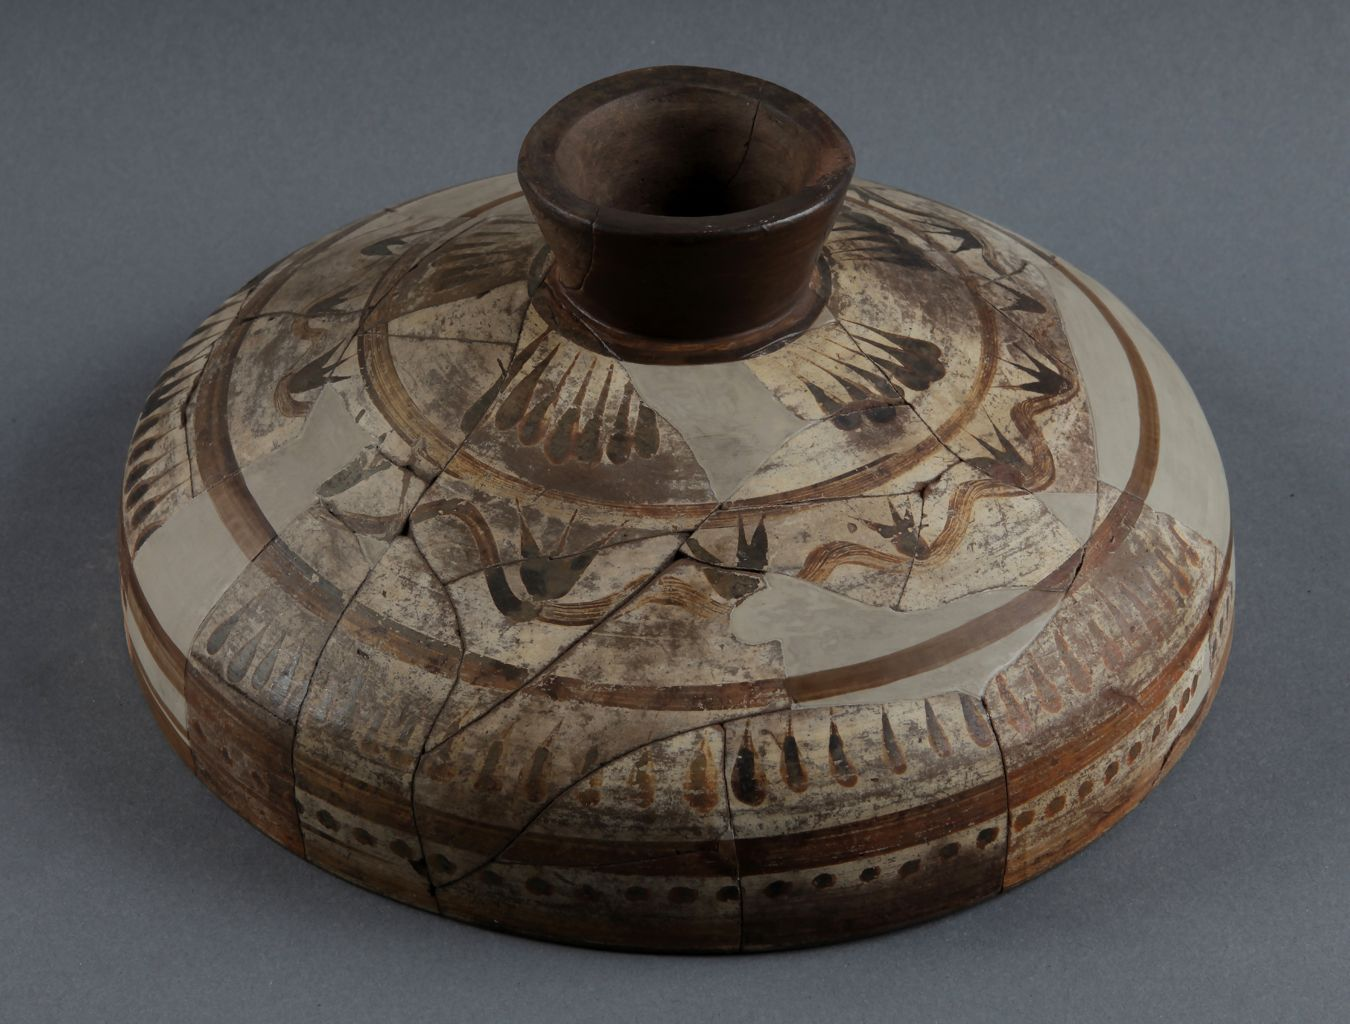 Lid with orientalizing decoration